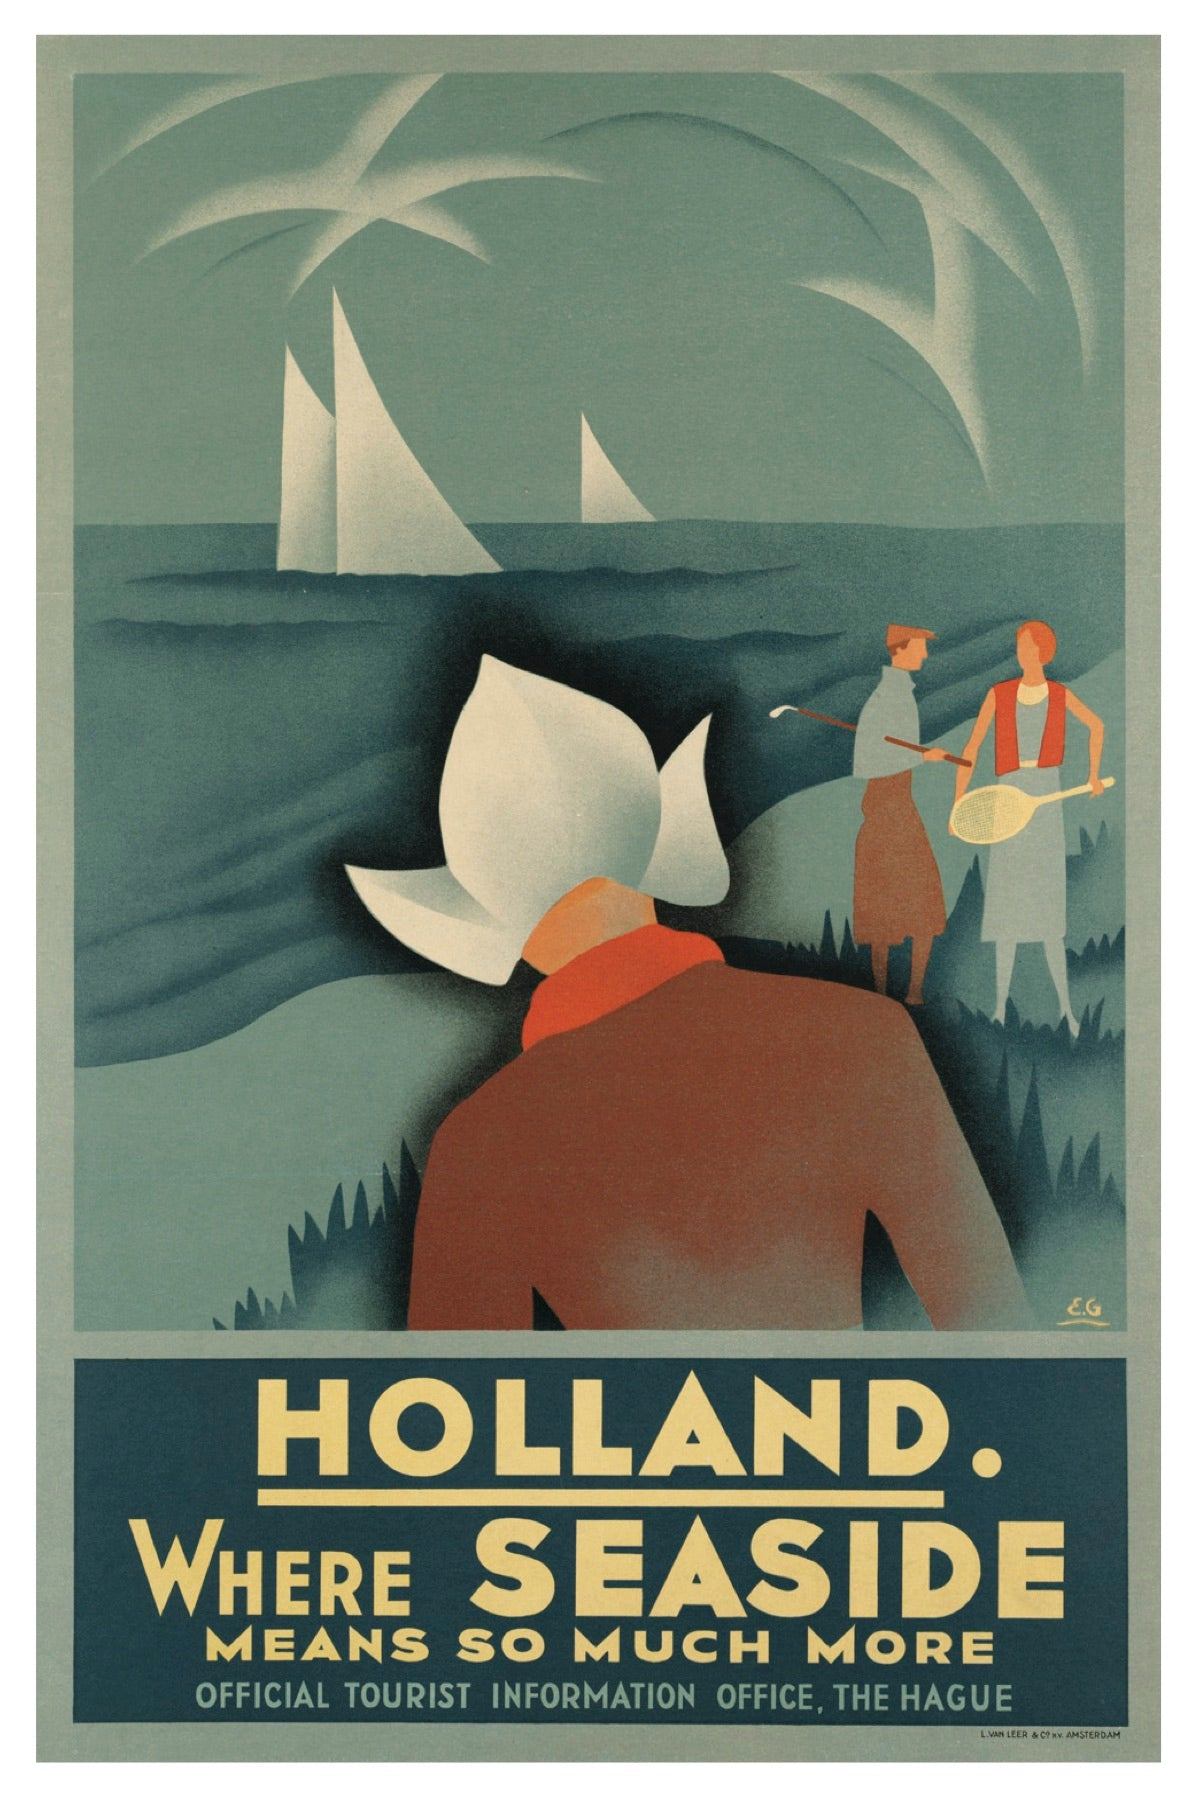 HOLLAND SEASIDE POSTAL CARD